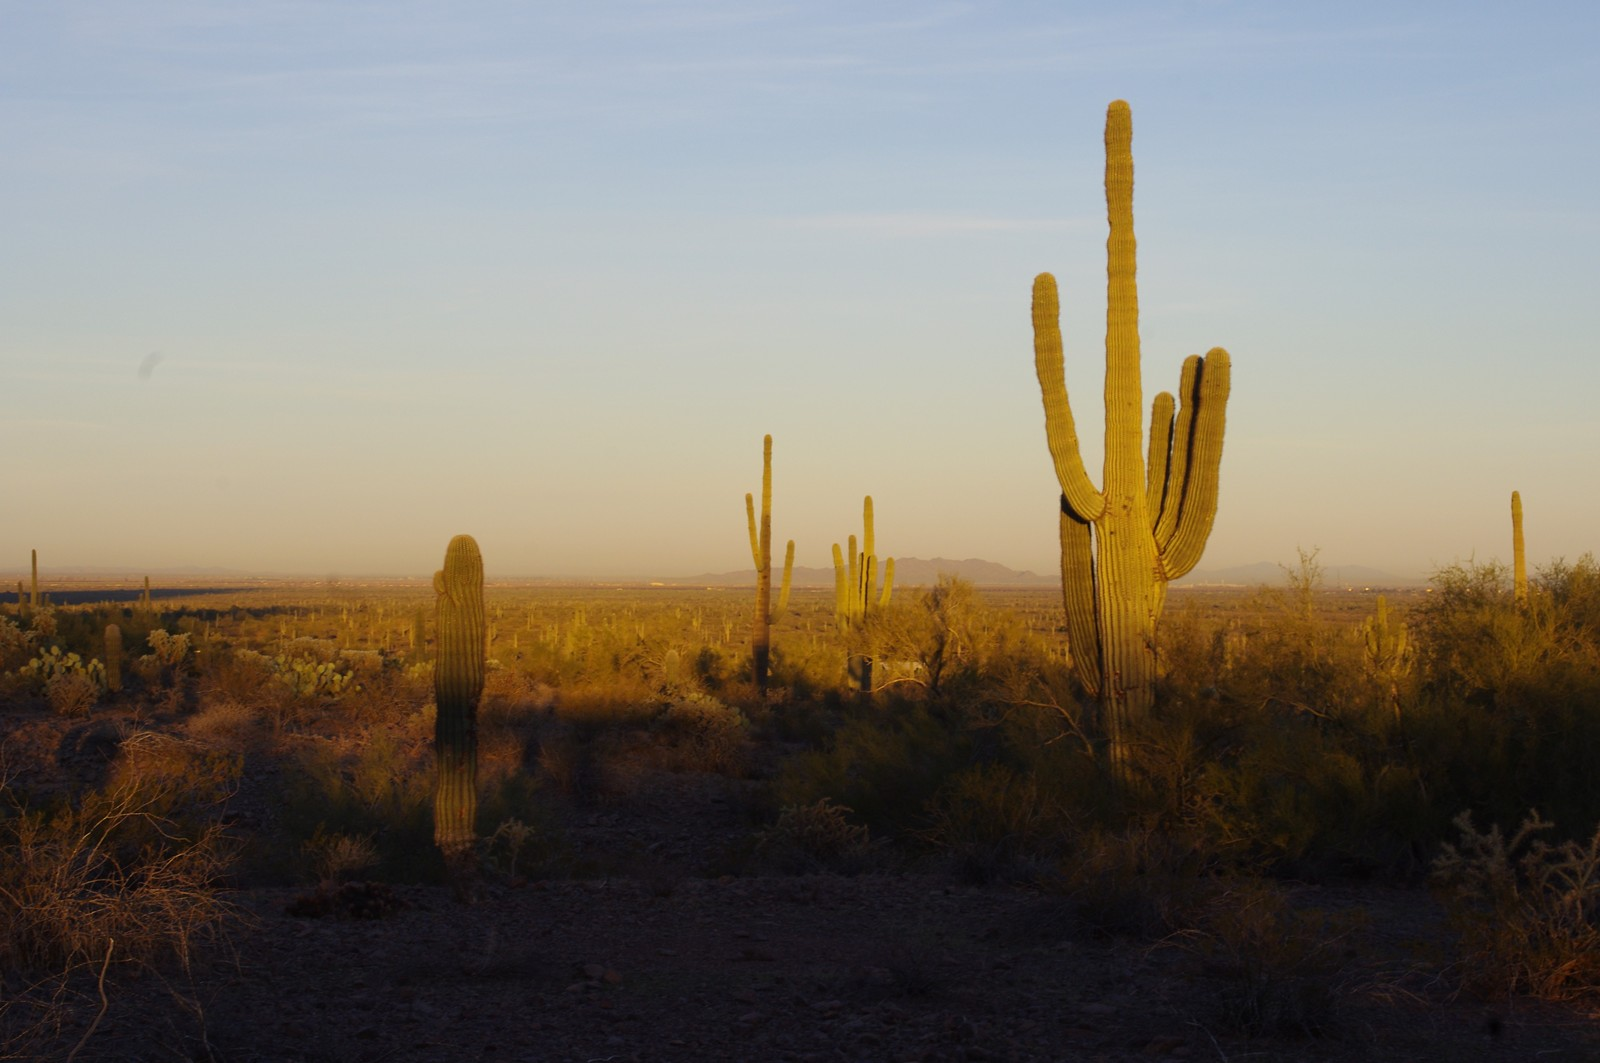 Click image for larger version  Name:Picacho-Cactus.jpg Views:78 Size:211.8 KB ID:121585